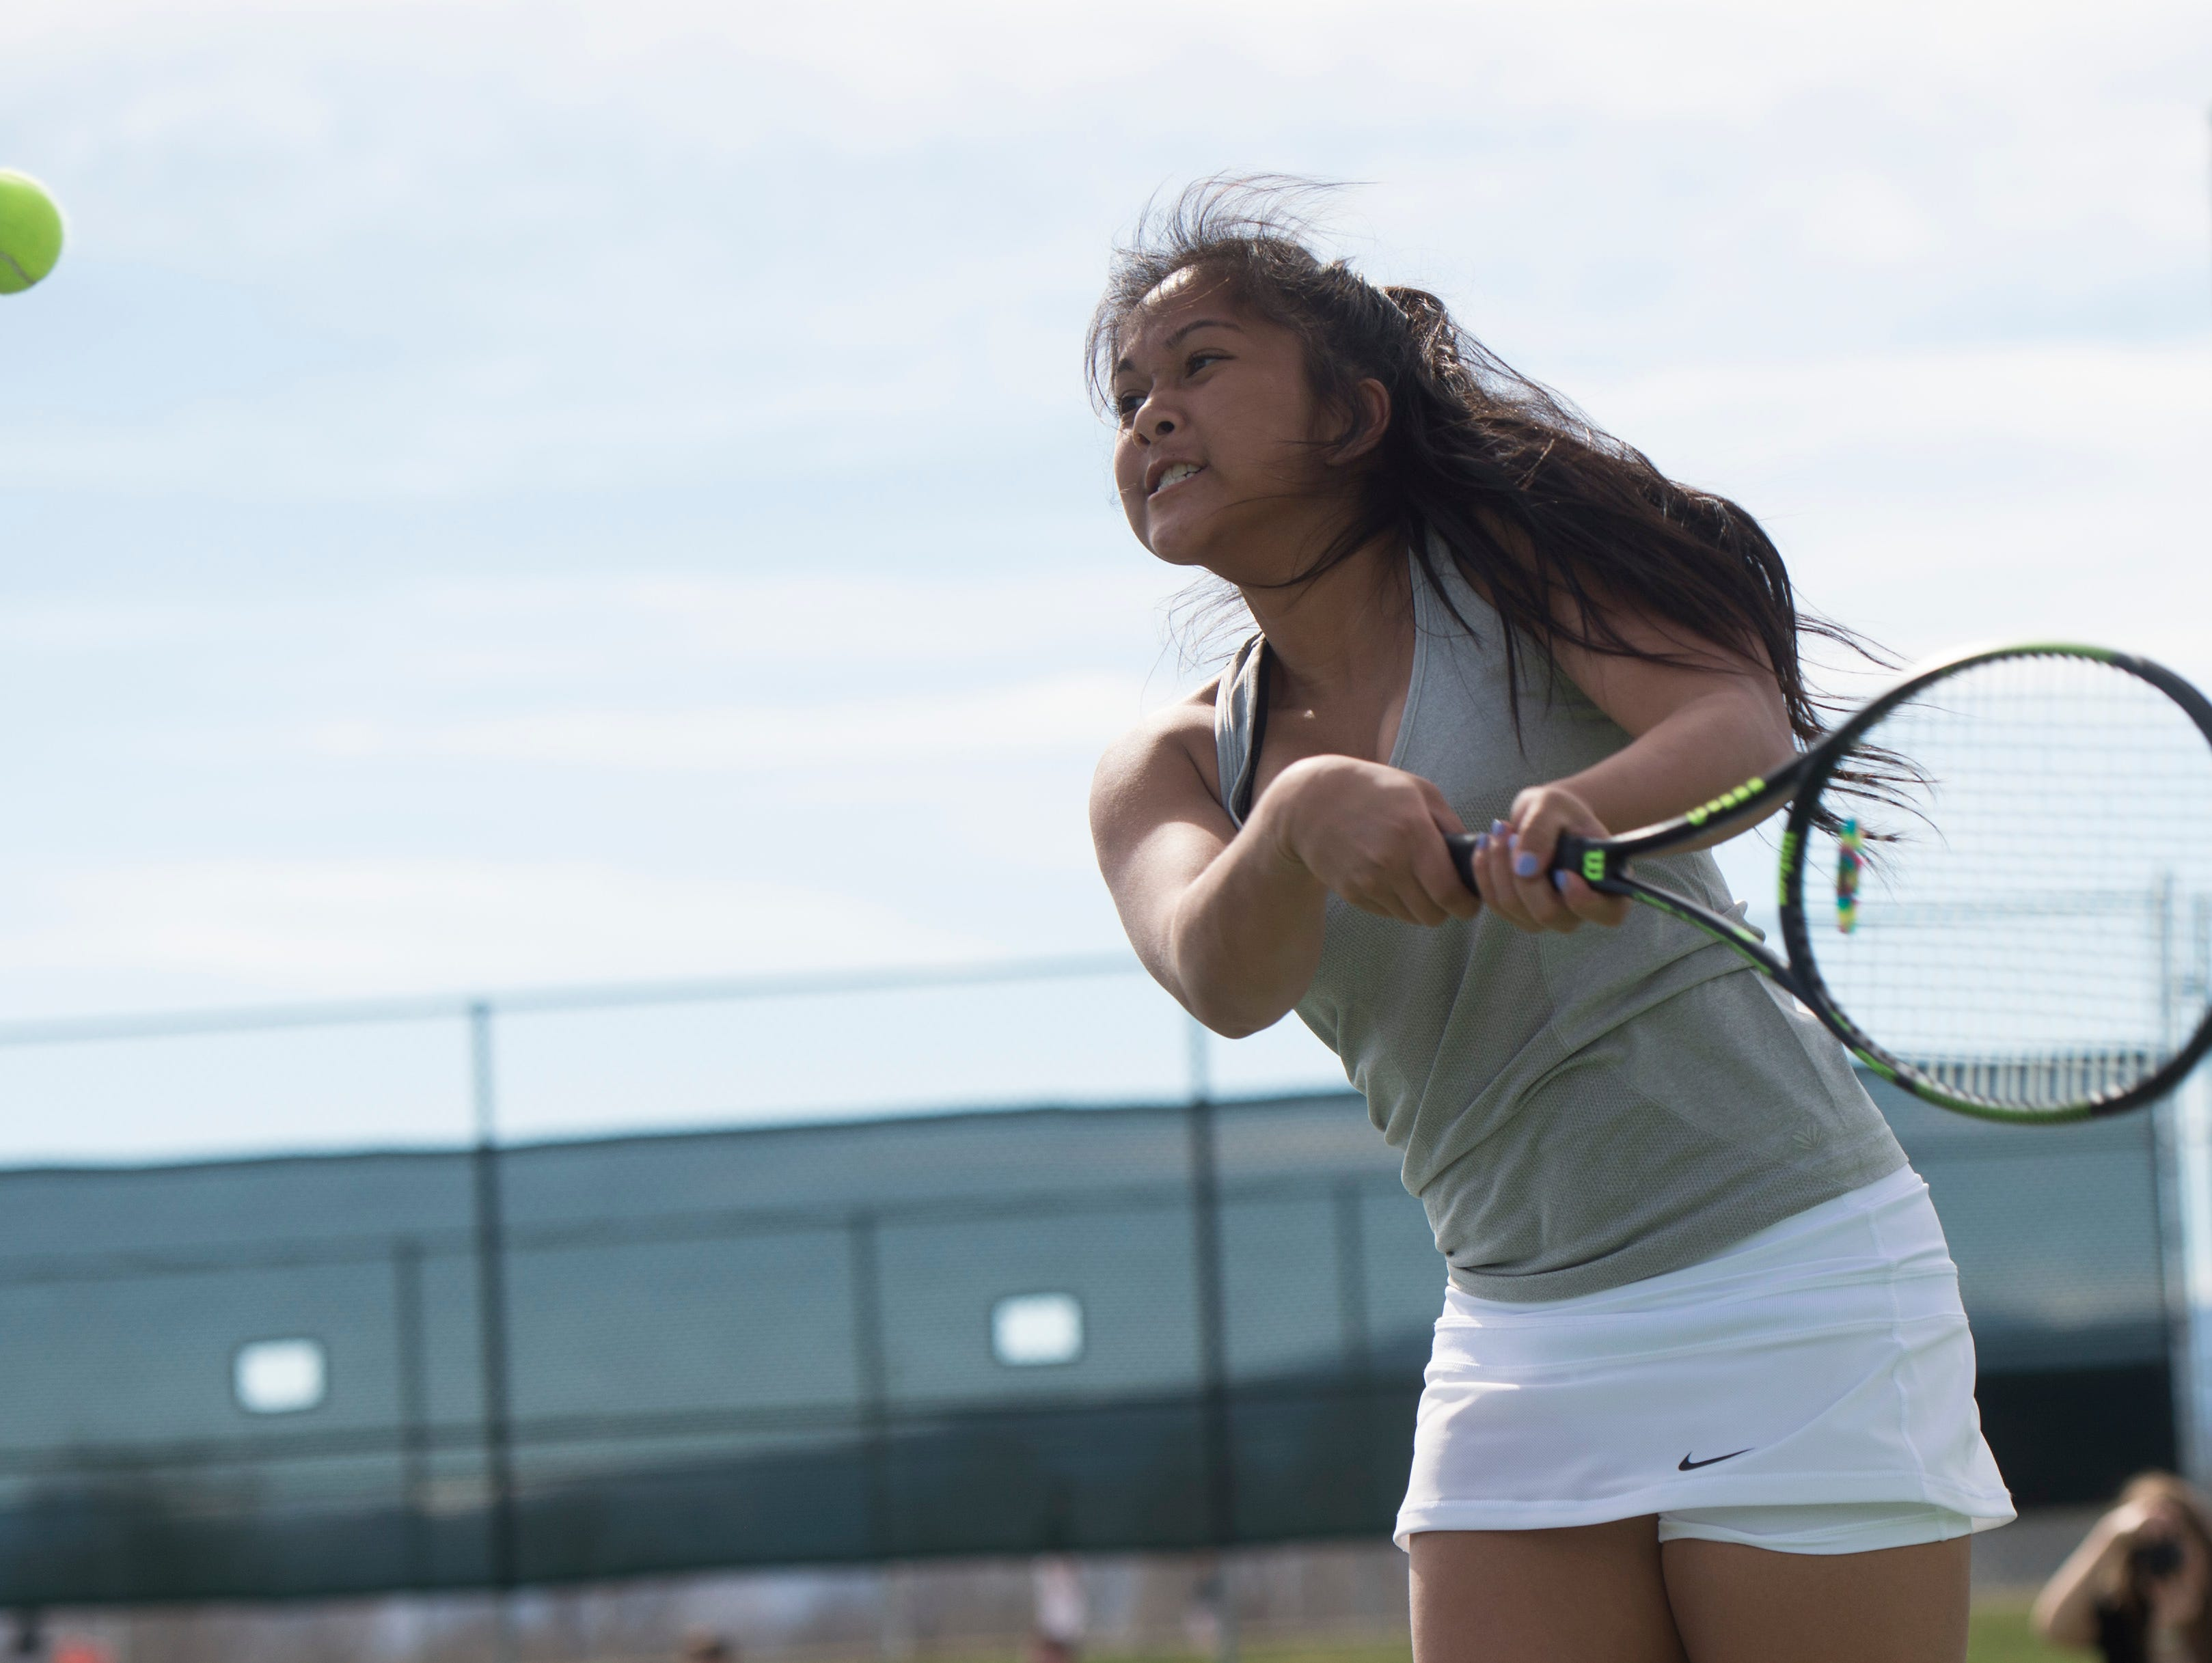 Shawnea Pagat of Fossil Ridge High School returns the ball to a Poudre tennis player during a match Wednesday, April 6, 2016.